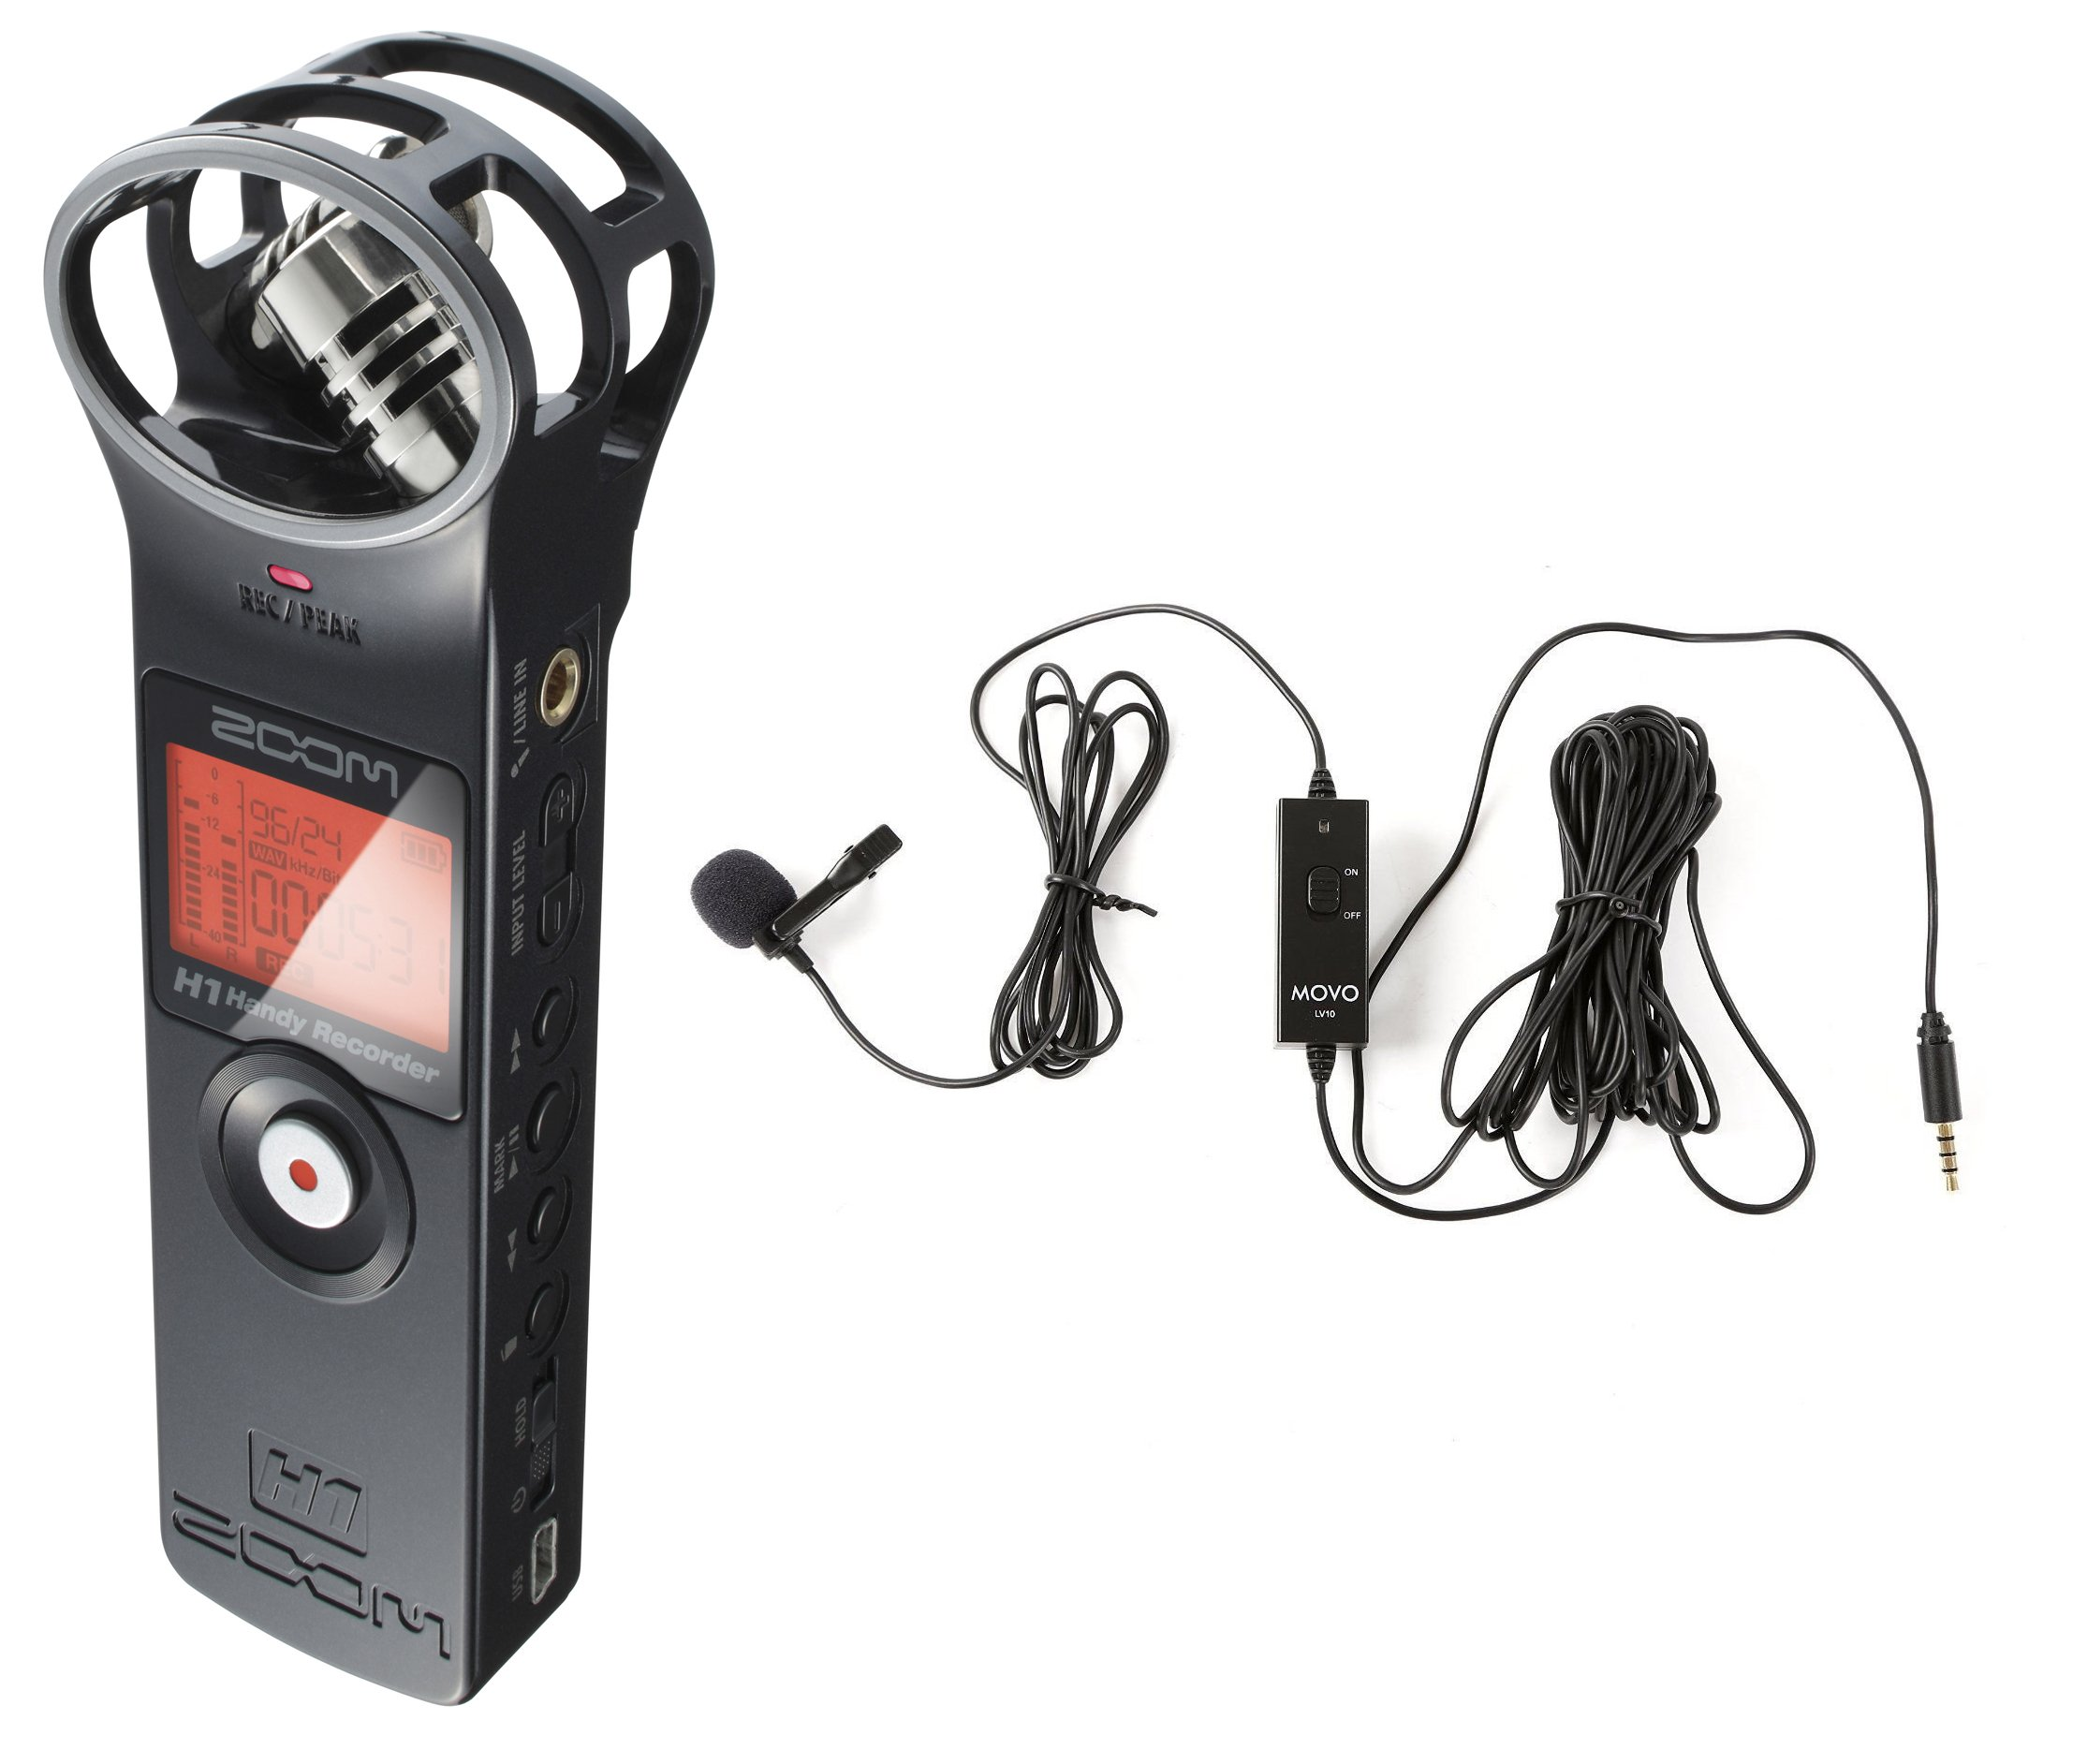 Zoom H1 Handy Portable Digital Recorder Bundle with Movo Lavalier Clip-on Omnidirectional Condenser Microphone